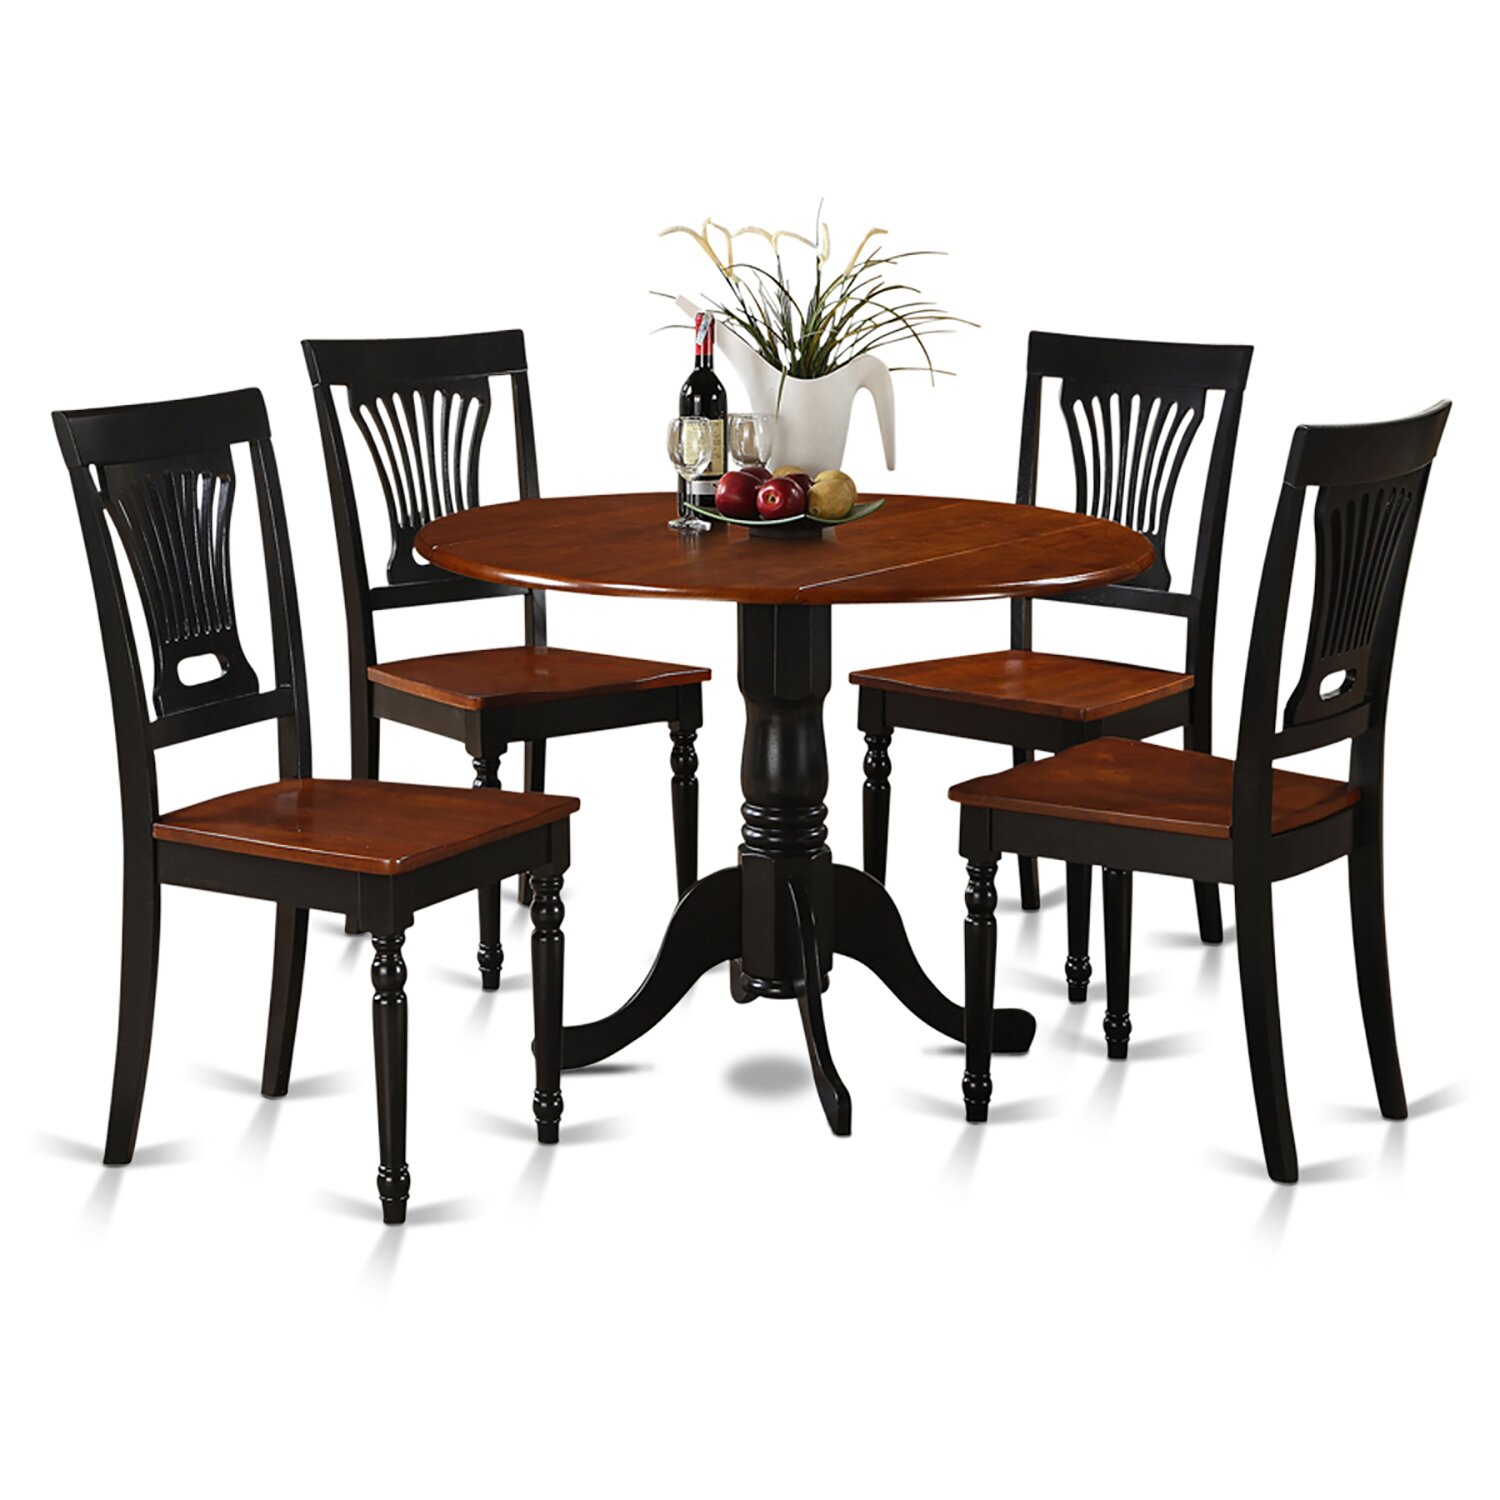 Wooden importers dublin 5 piece dining set reviews wayfair for Small wooden dining table set